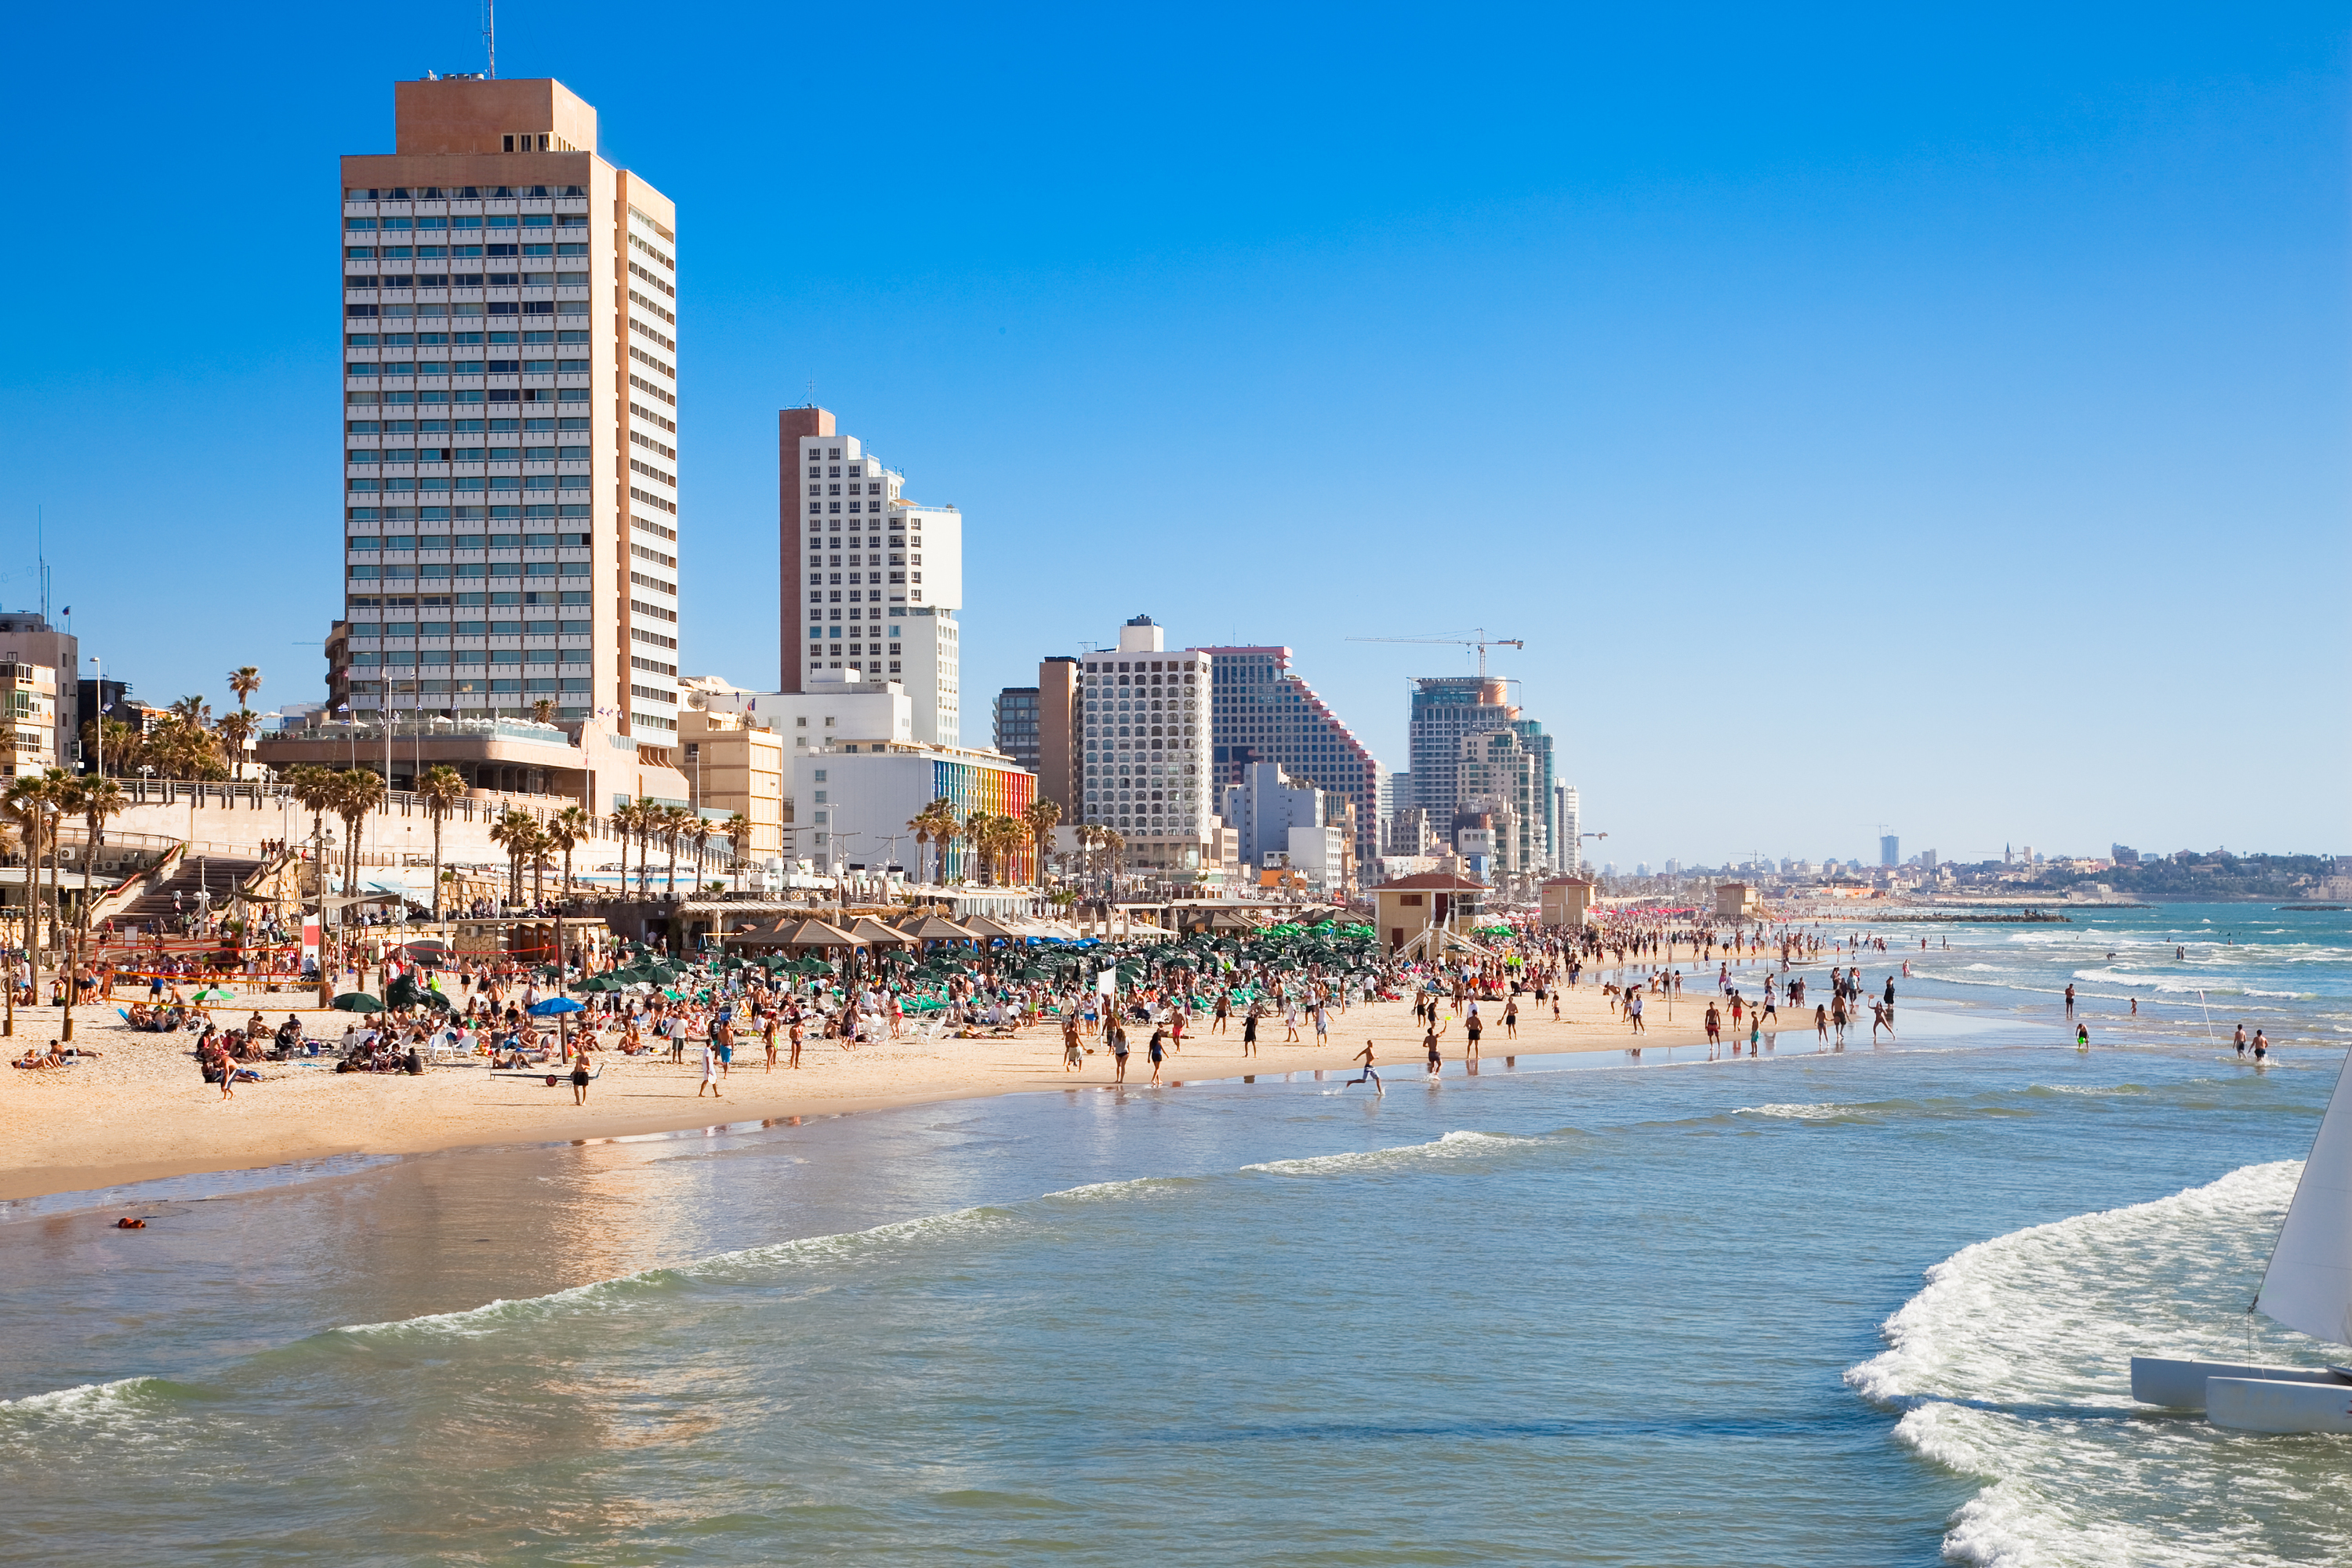 7 tips to enjoy Tel Aviv like a local